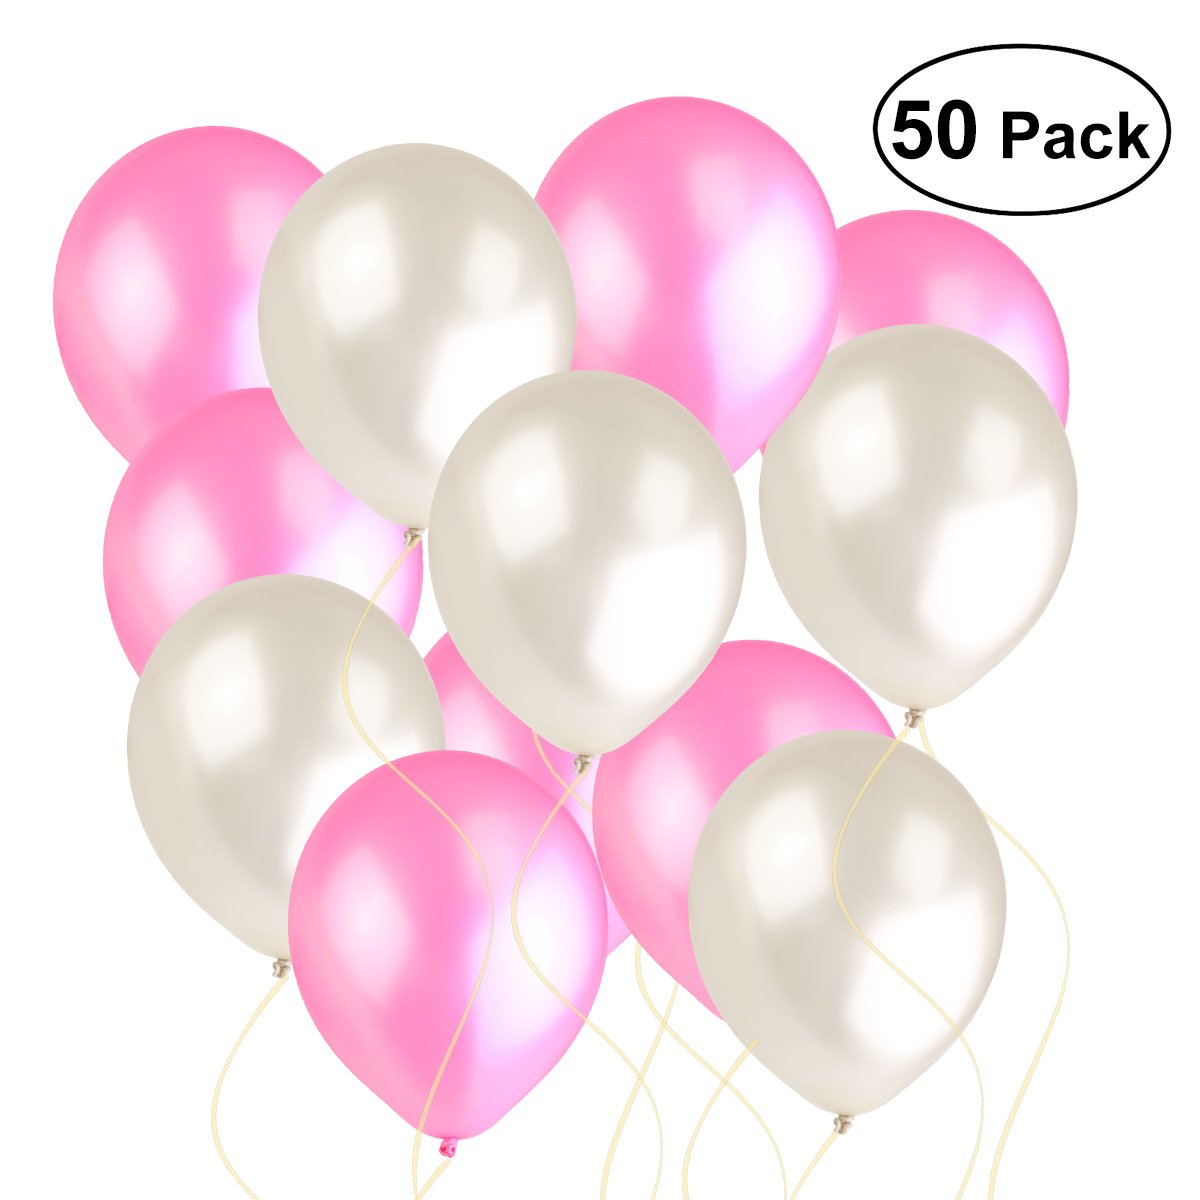 NUOLUX 50pcs Pearly Lustre Balloon Decoration for Wedding Birthday Party Toy for Kids Fun (White Pink)